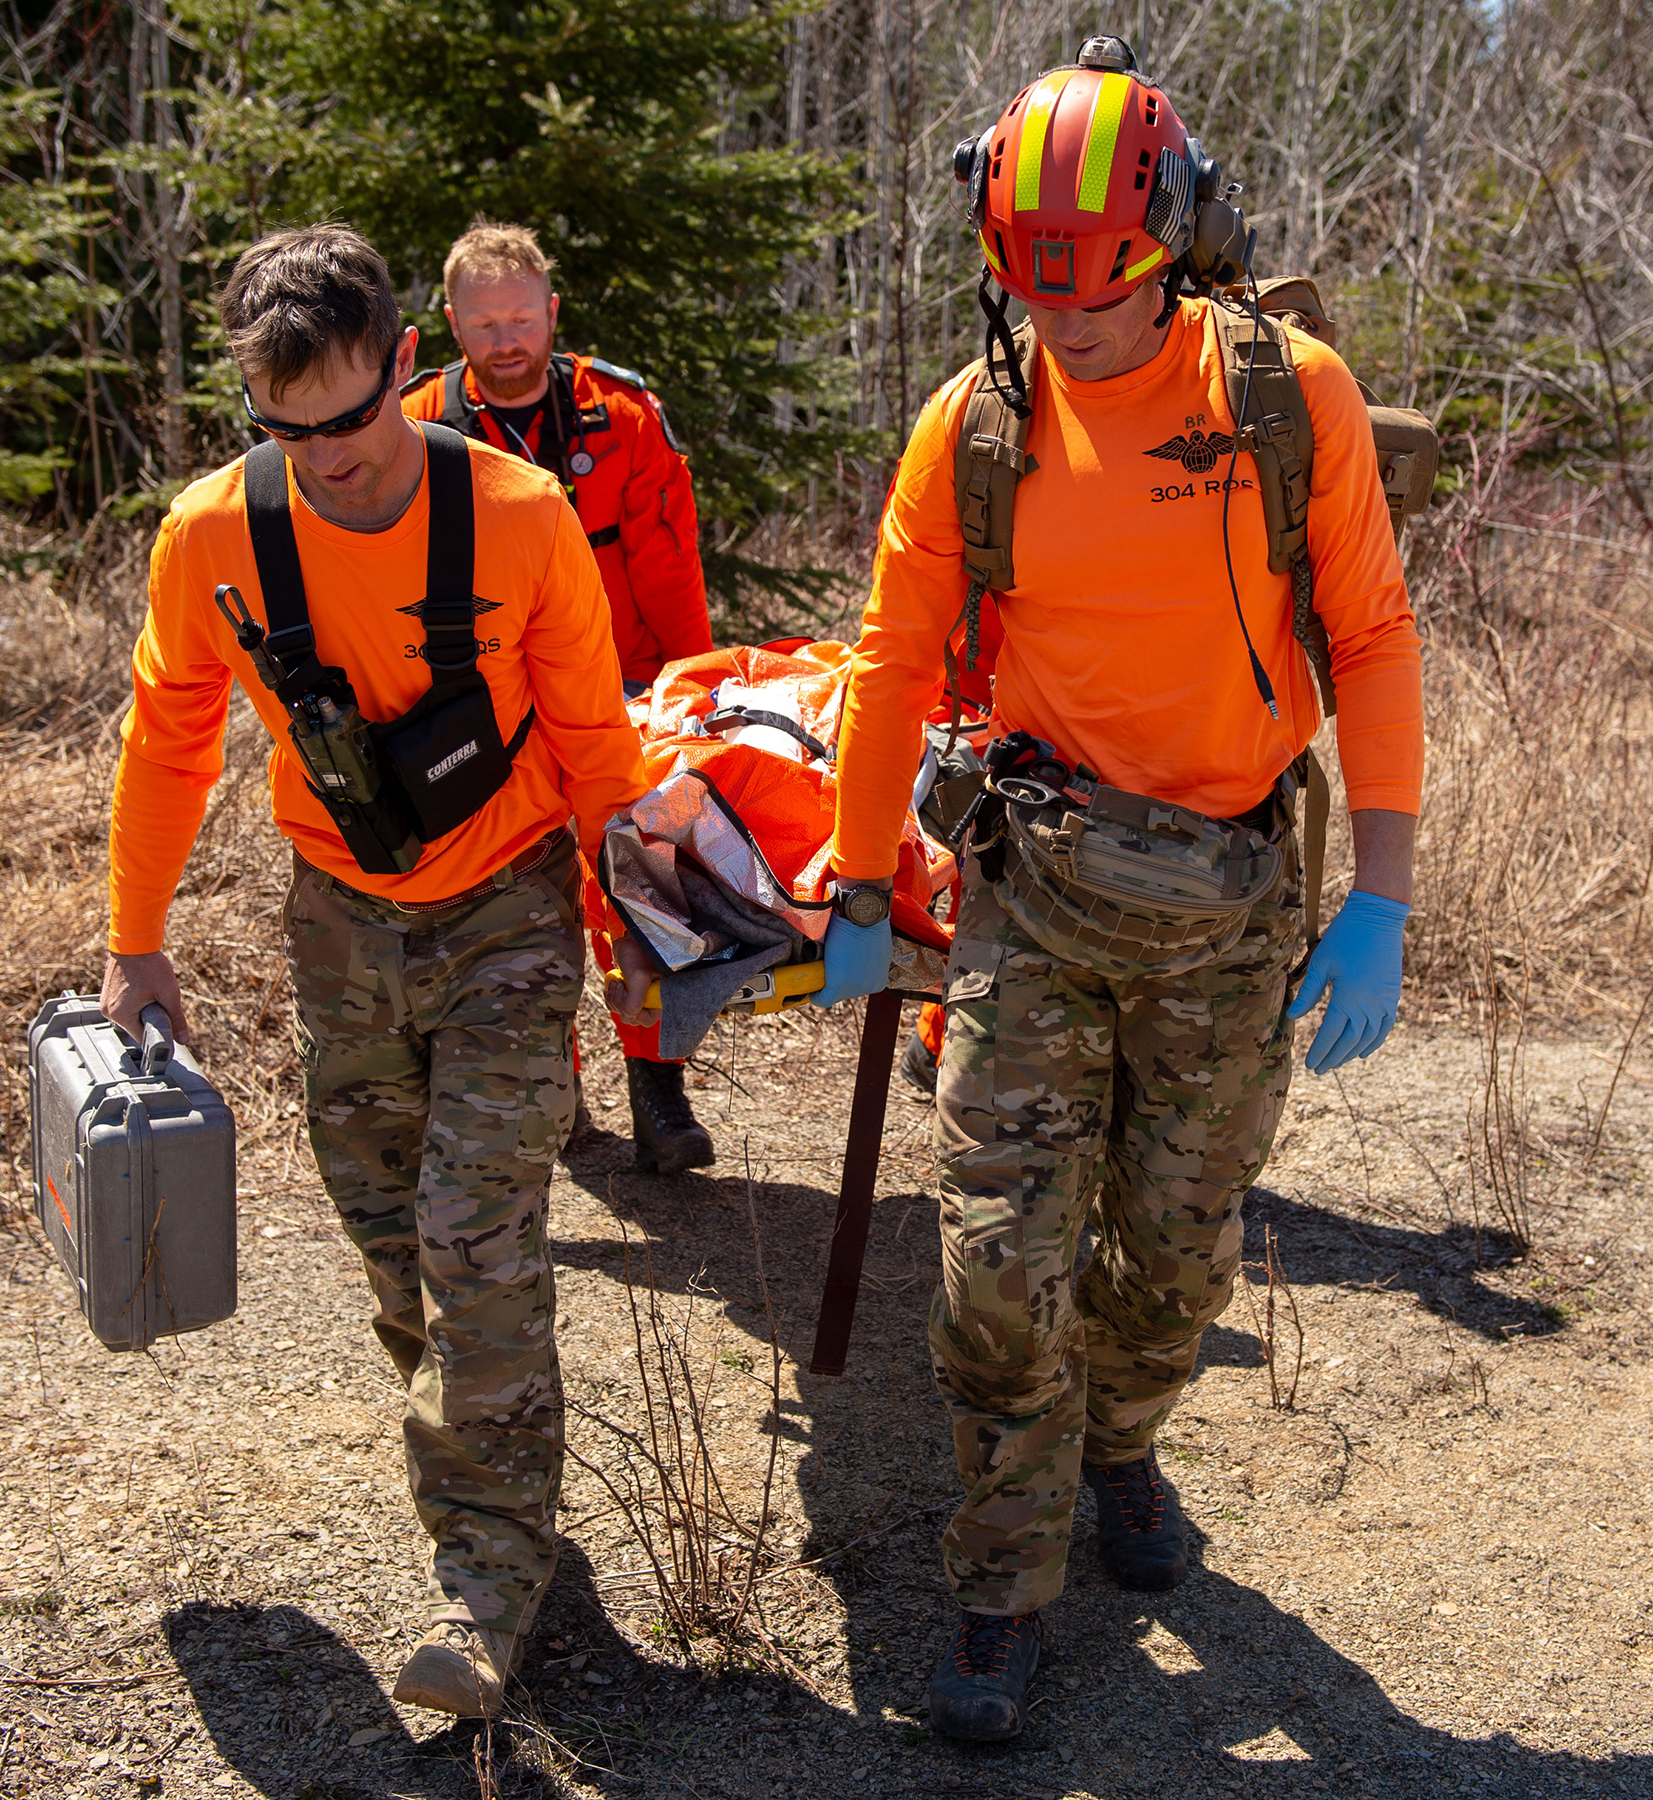 United States Air Force combat search and rescue para jumpers (foreground) and RCAF search and rescue technicians evacuate a simulated casualty on a litter on May 7, 2019, during Chinthex 2019, held near Thunder Bay, Ontario. PHOTO: Corporal Bryce Cooper, WG2019-0191-090